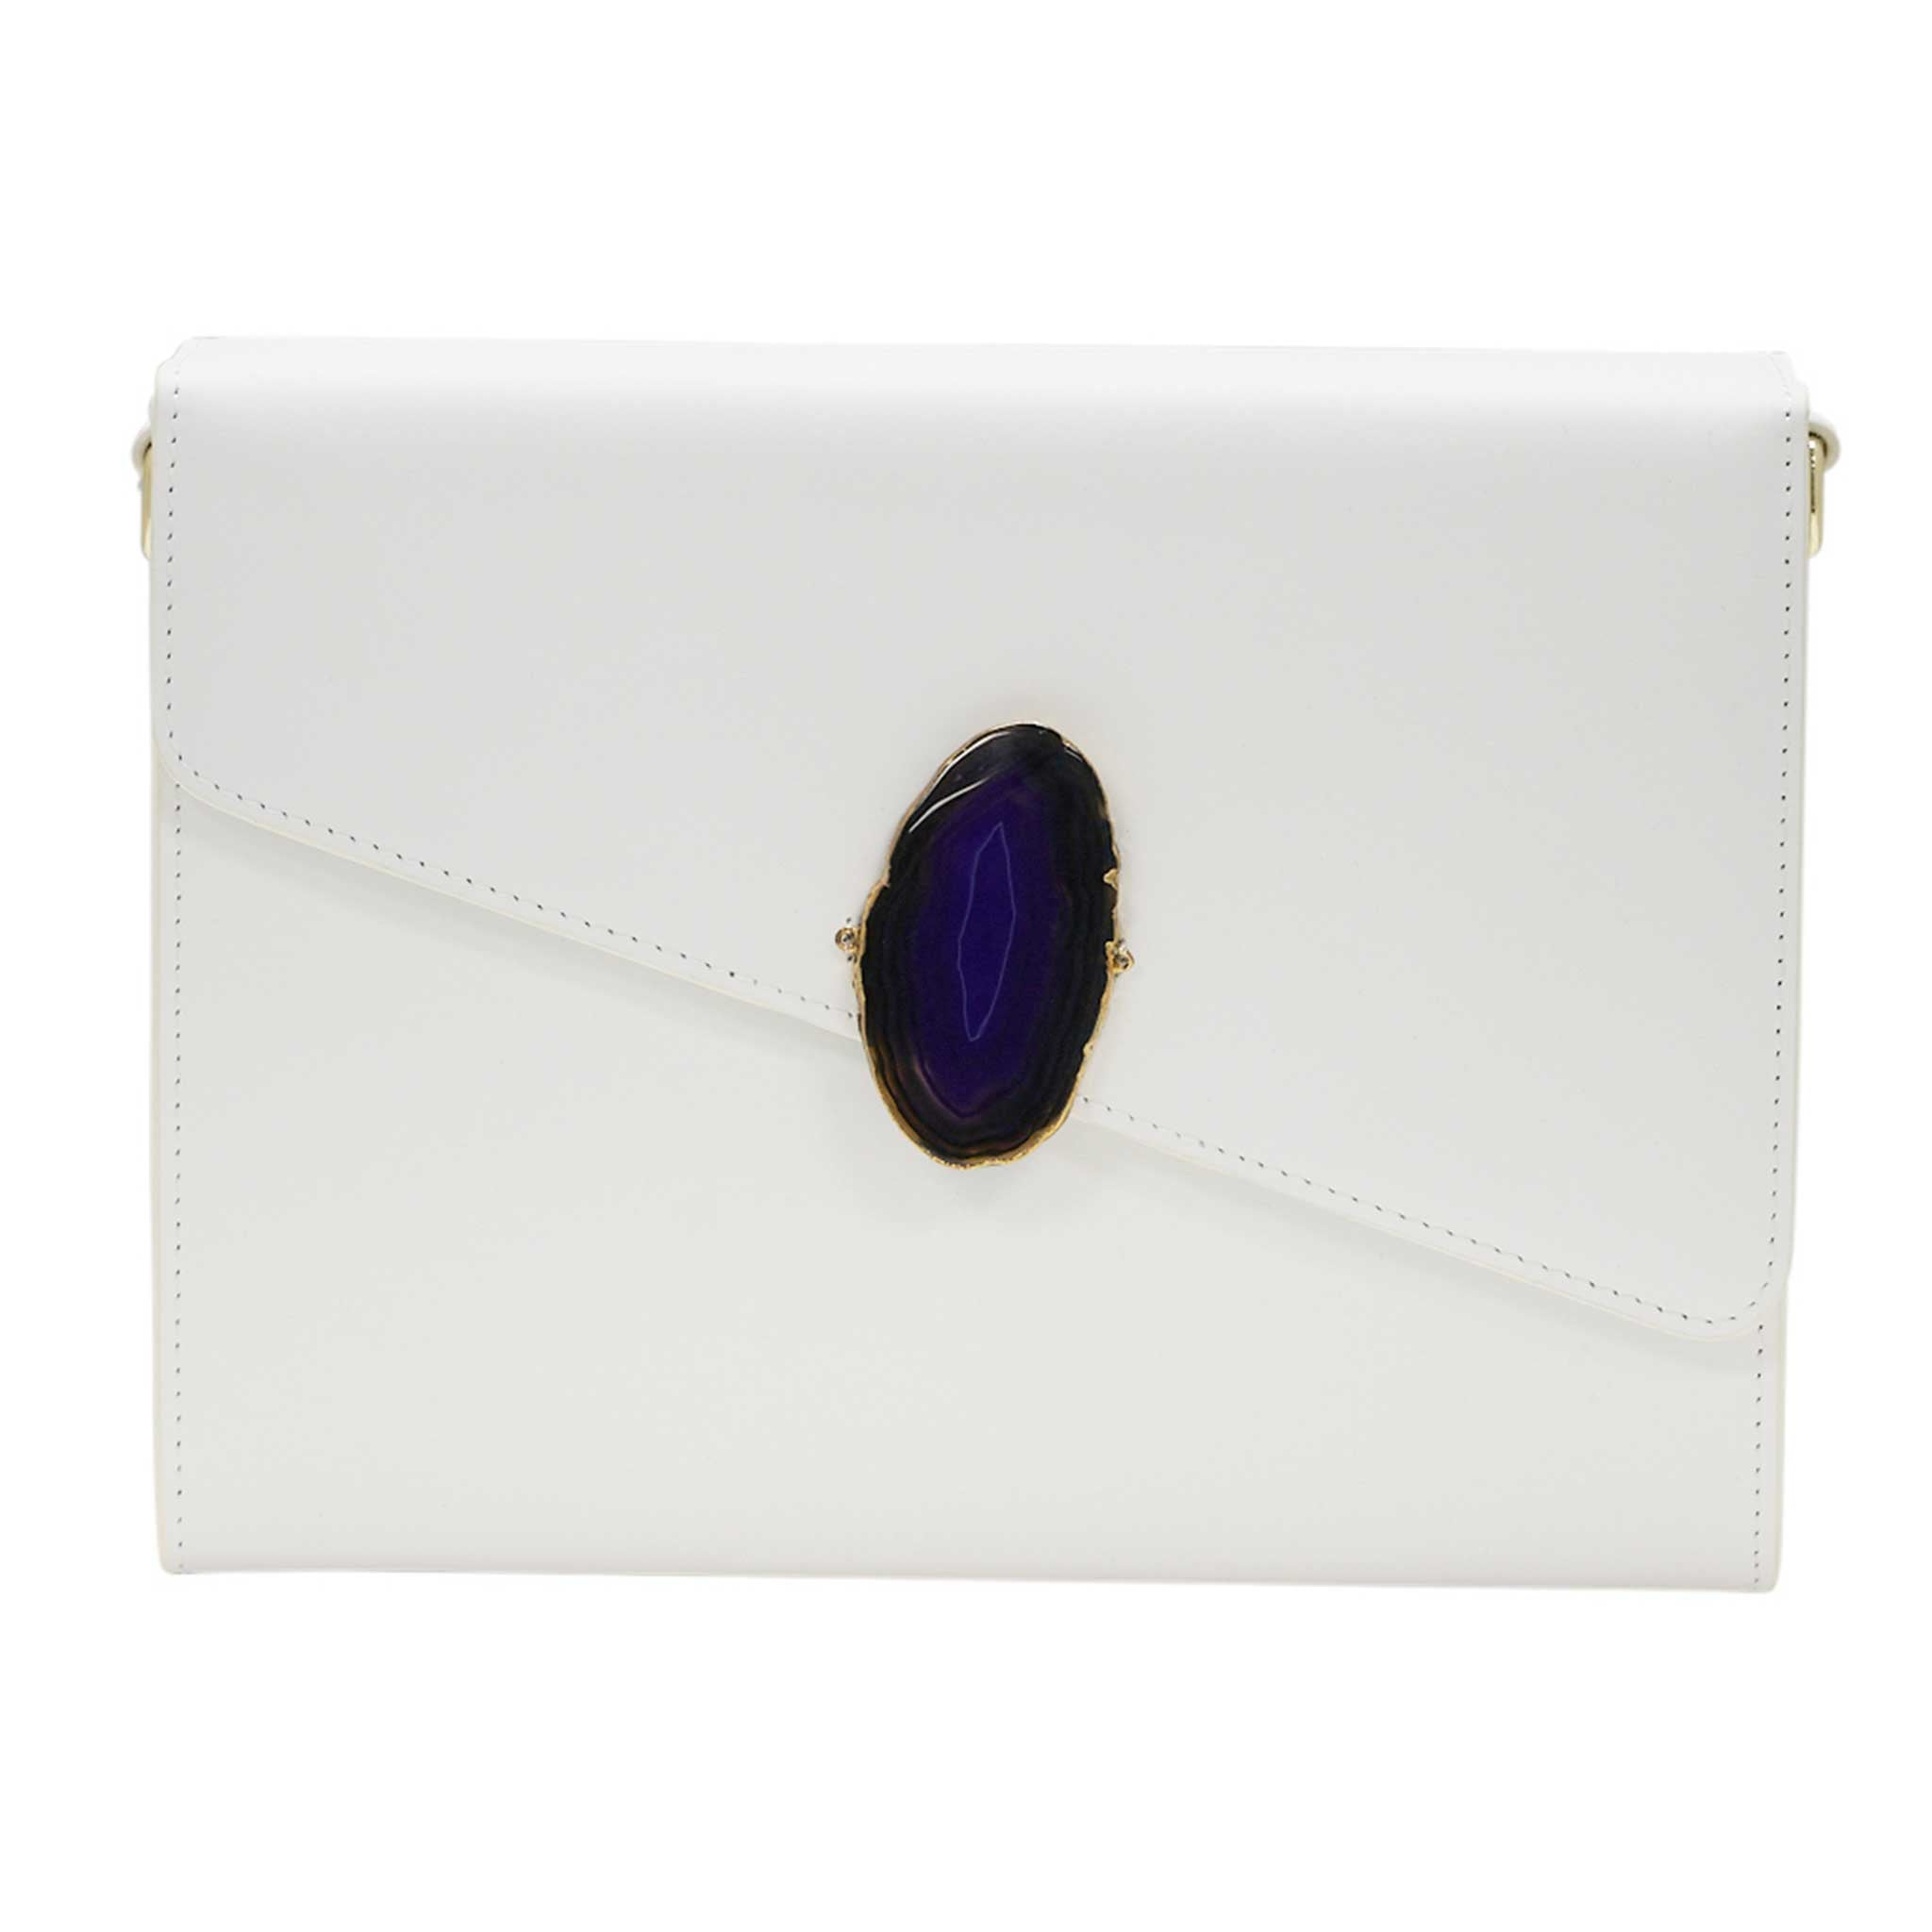 LOVED BAG - MOONSTONE WHITE LEATHER WITH BLUE AGATE - 1.03.006.018